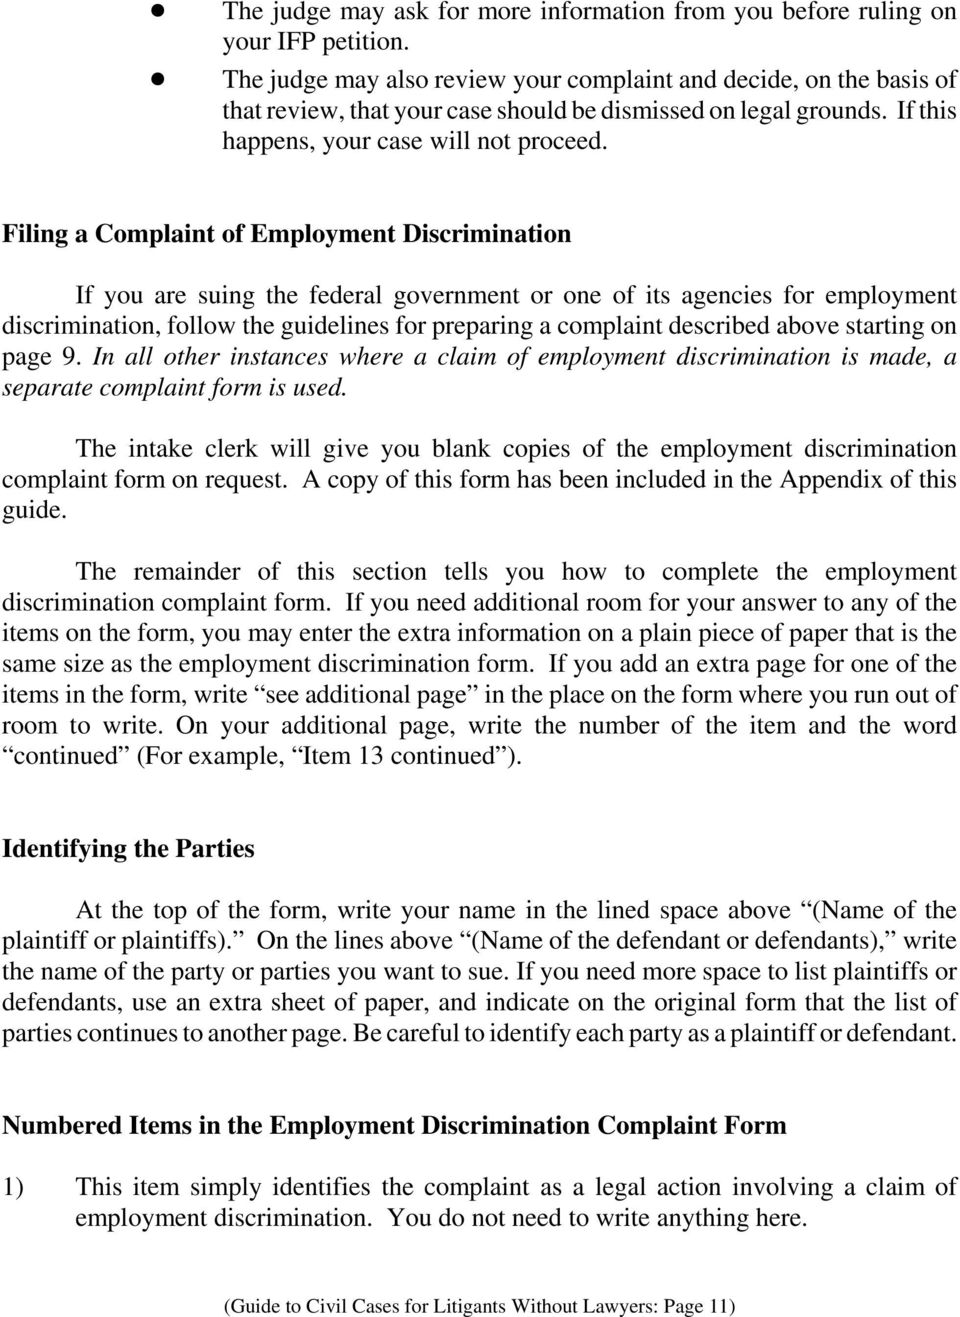 Filing a Complaint of Employment Discrimination If you are suing the federal government or one of its agencies for employment discrimination, follow the guidelines for preparing a complaint described